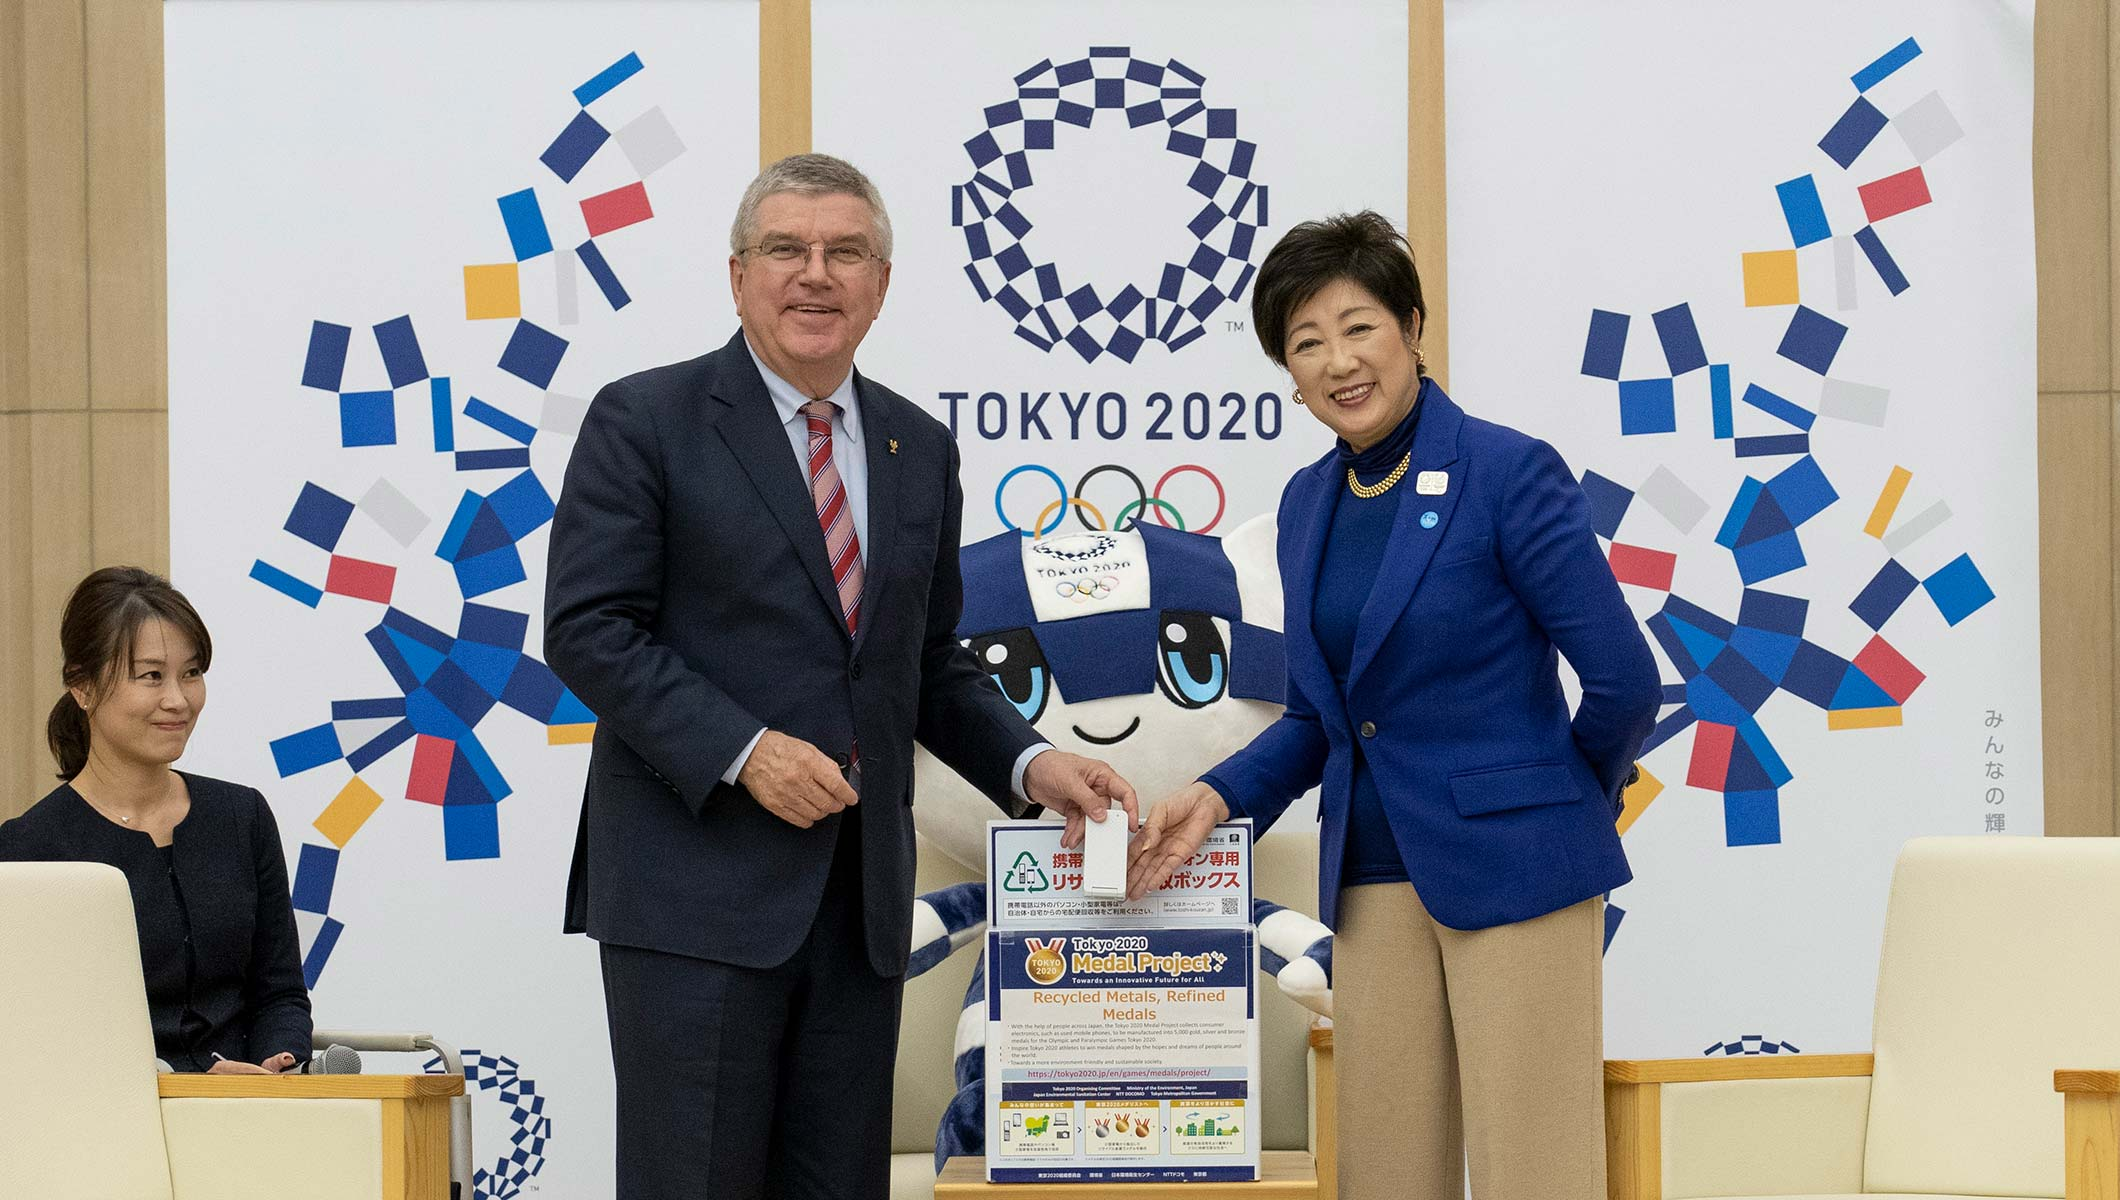 President Thomas Bach joined Tokyo's Governor Yuriko Koike, Sunday for a symbolic ceremony demonstrating the sustainability of the Olympic Games Tokyo 2020.